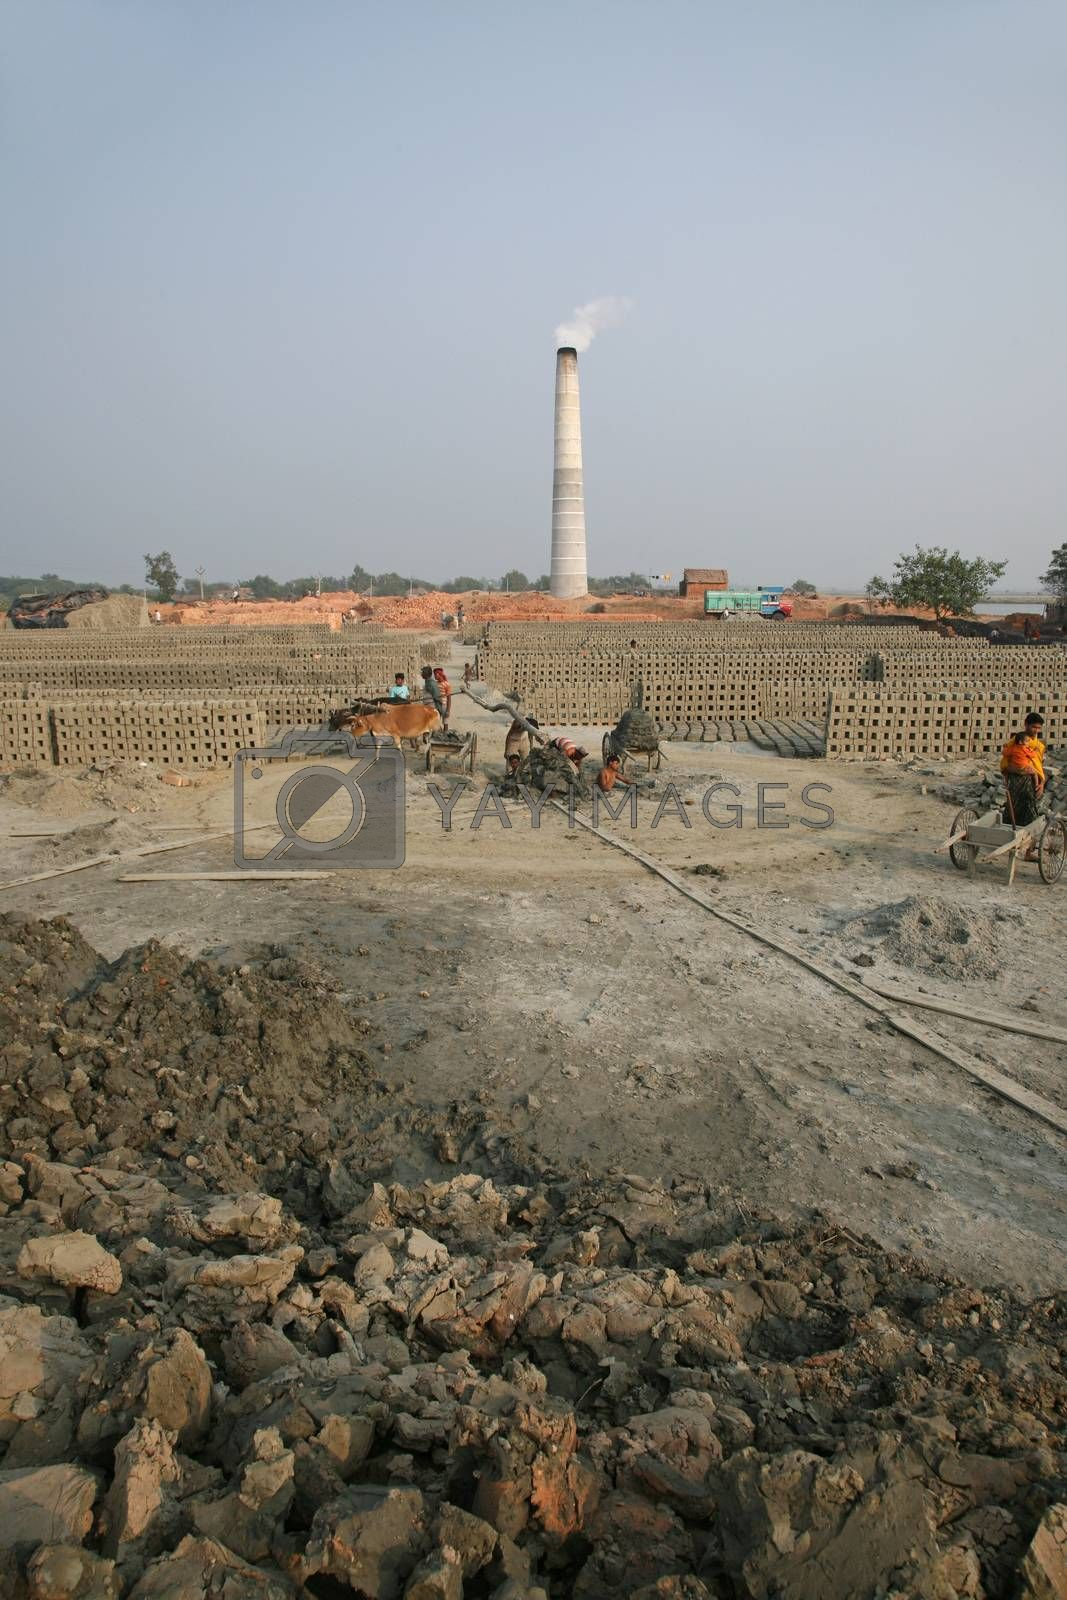 A Brick field is a large landed area, used for manufacturing bricks from mud, soil, clay and sand. Tools and machines for making bricks are very rudimentary, January 16, 2009 in Sarberia, West Bengal, India.